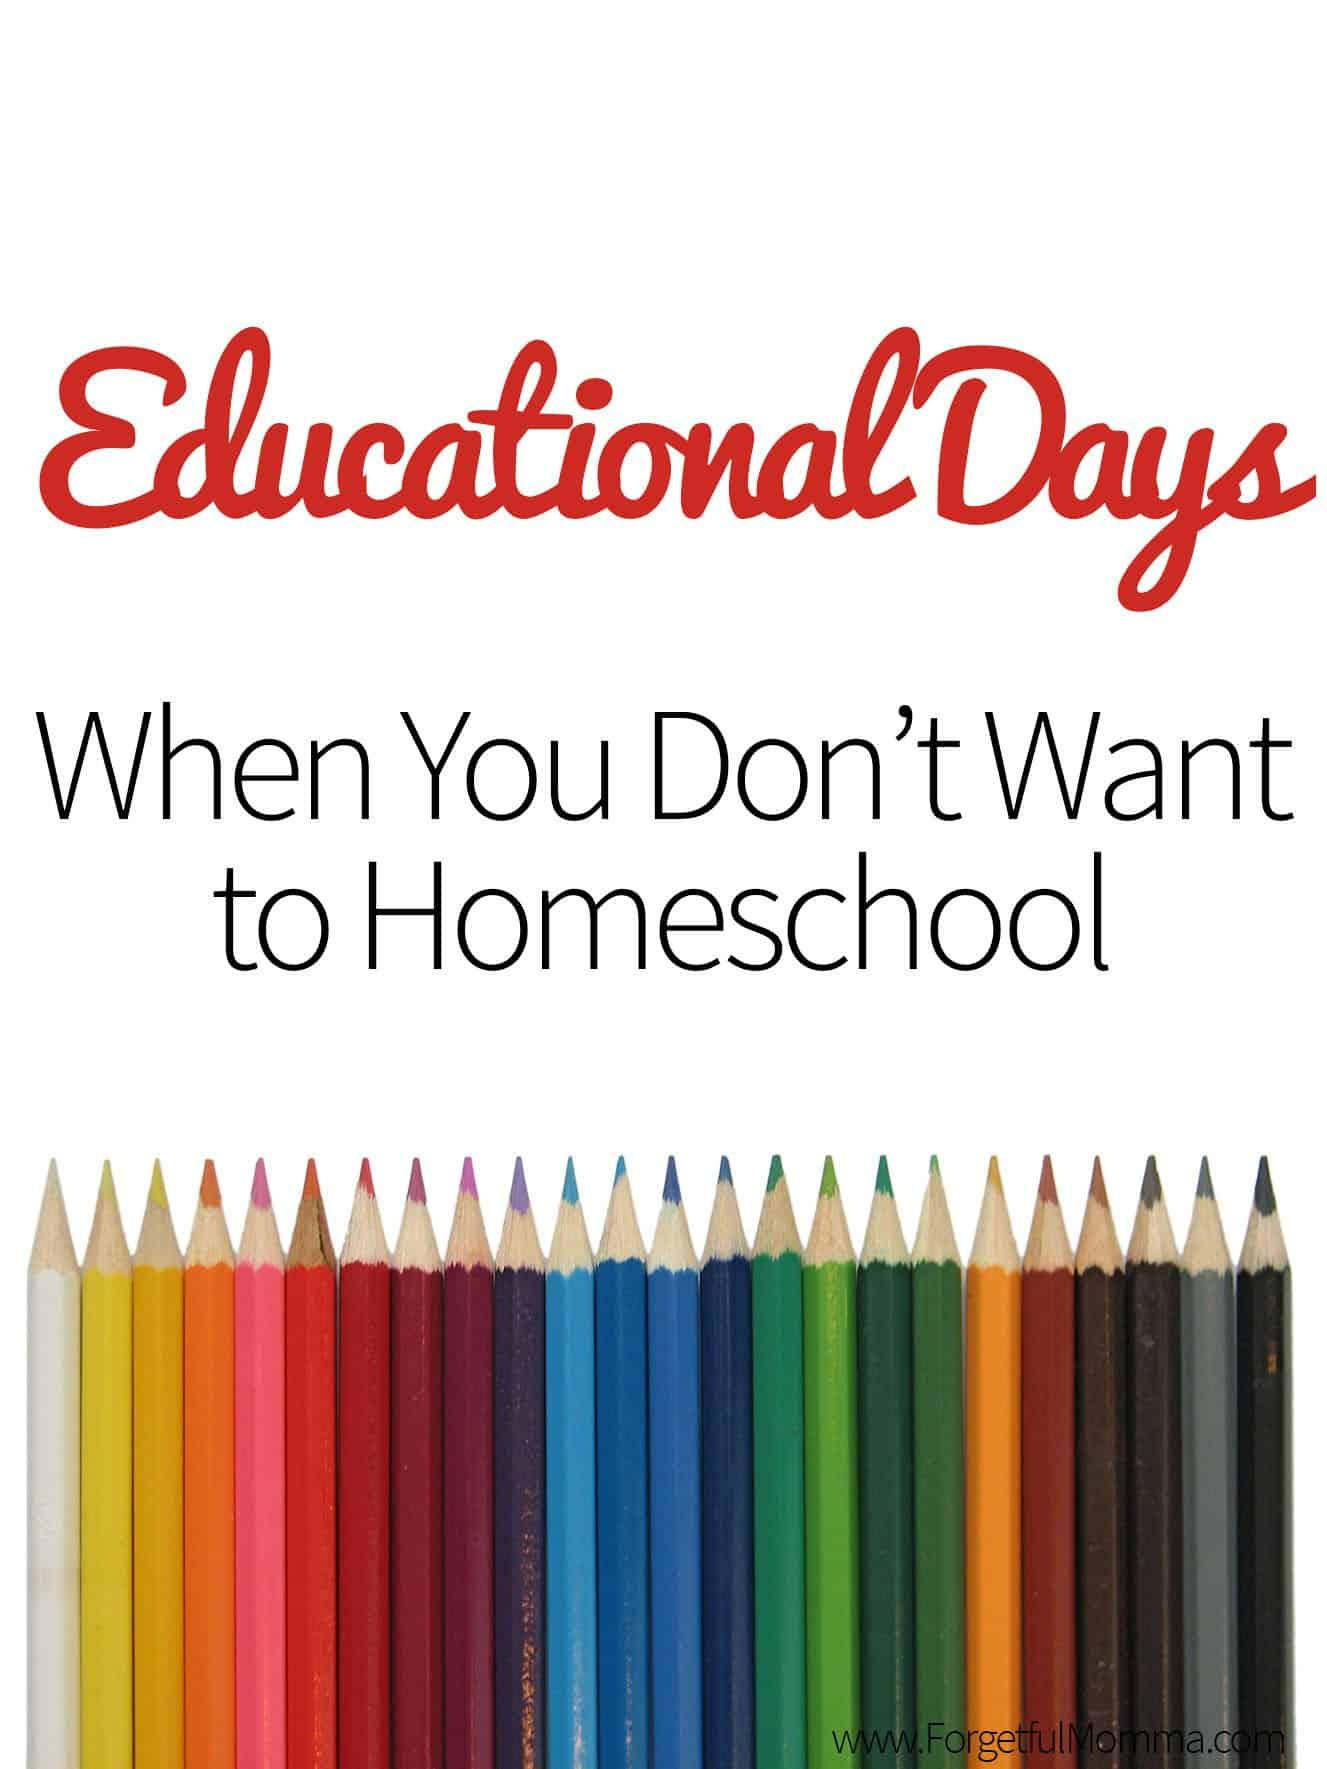 Educational Days When You Don't Want to Homeschool